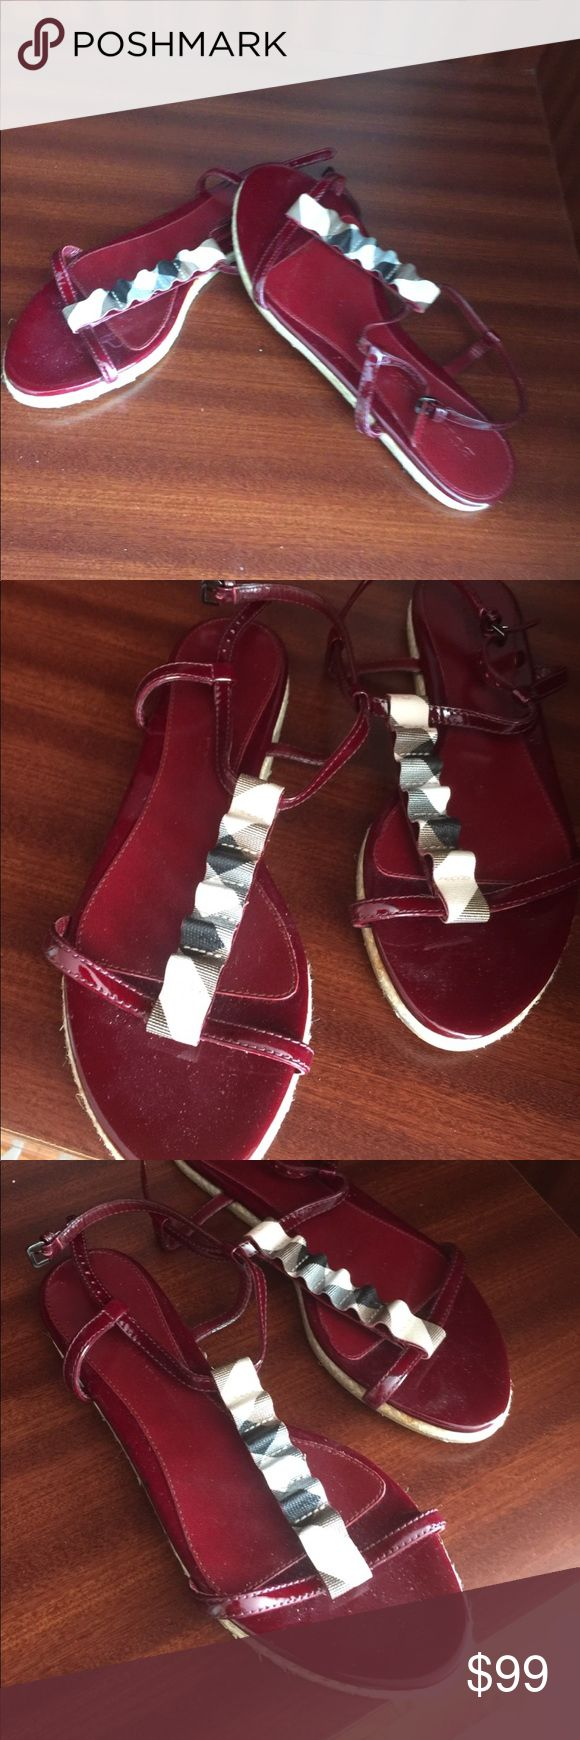 New Burberry women's sandals Size40 Very beautiful burgundy color Slingbacks trimmed with Burberry coloring material Burberry Shoes Sandals